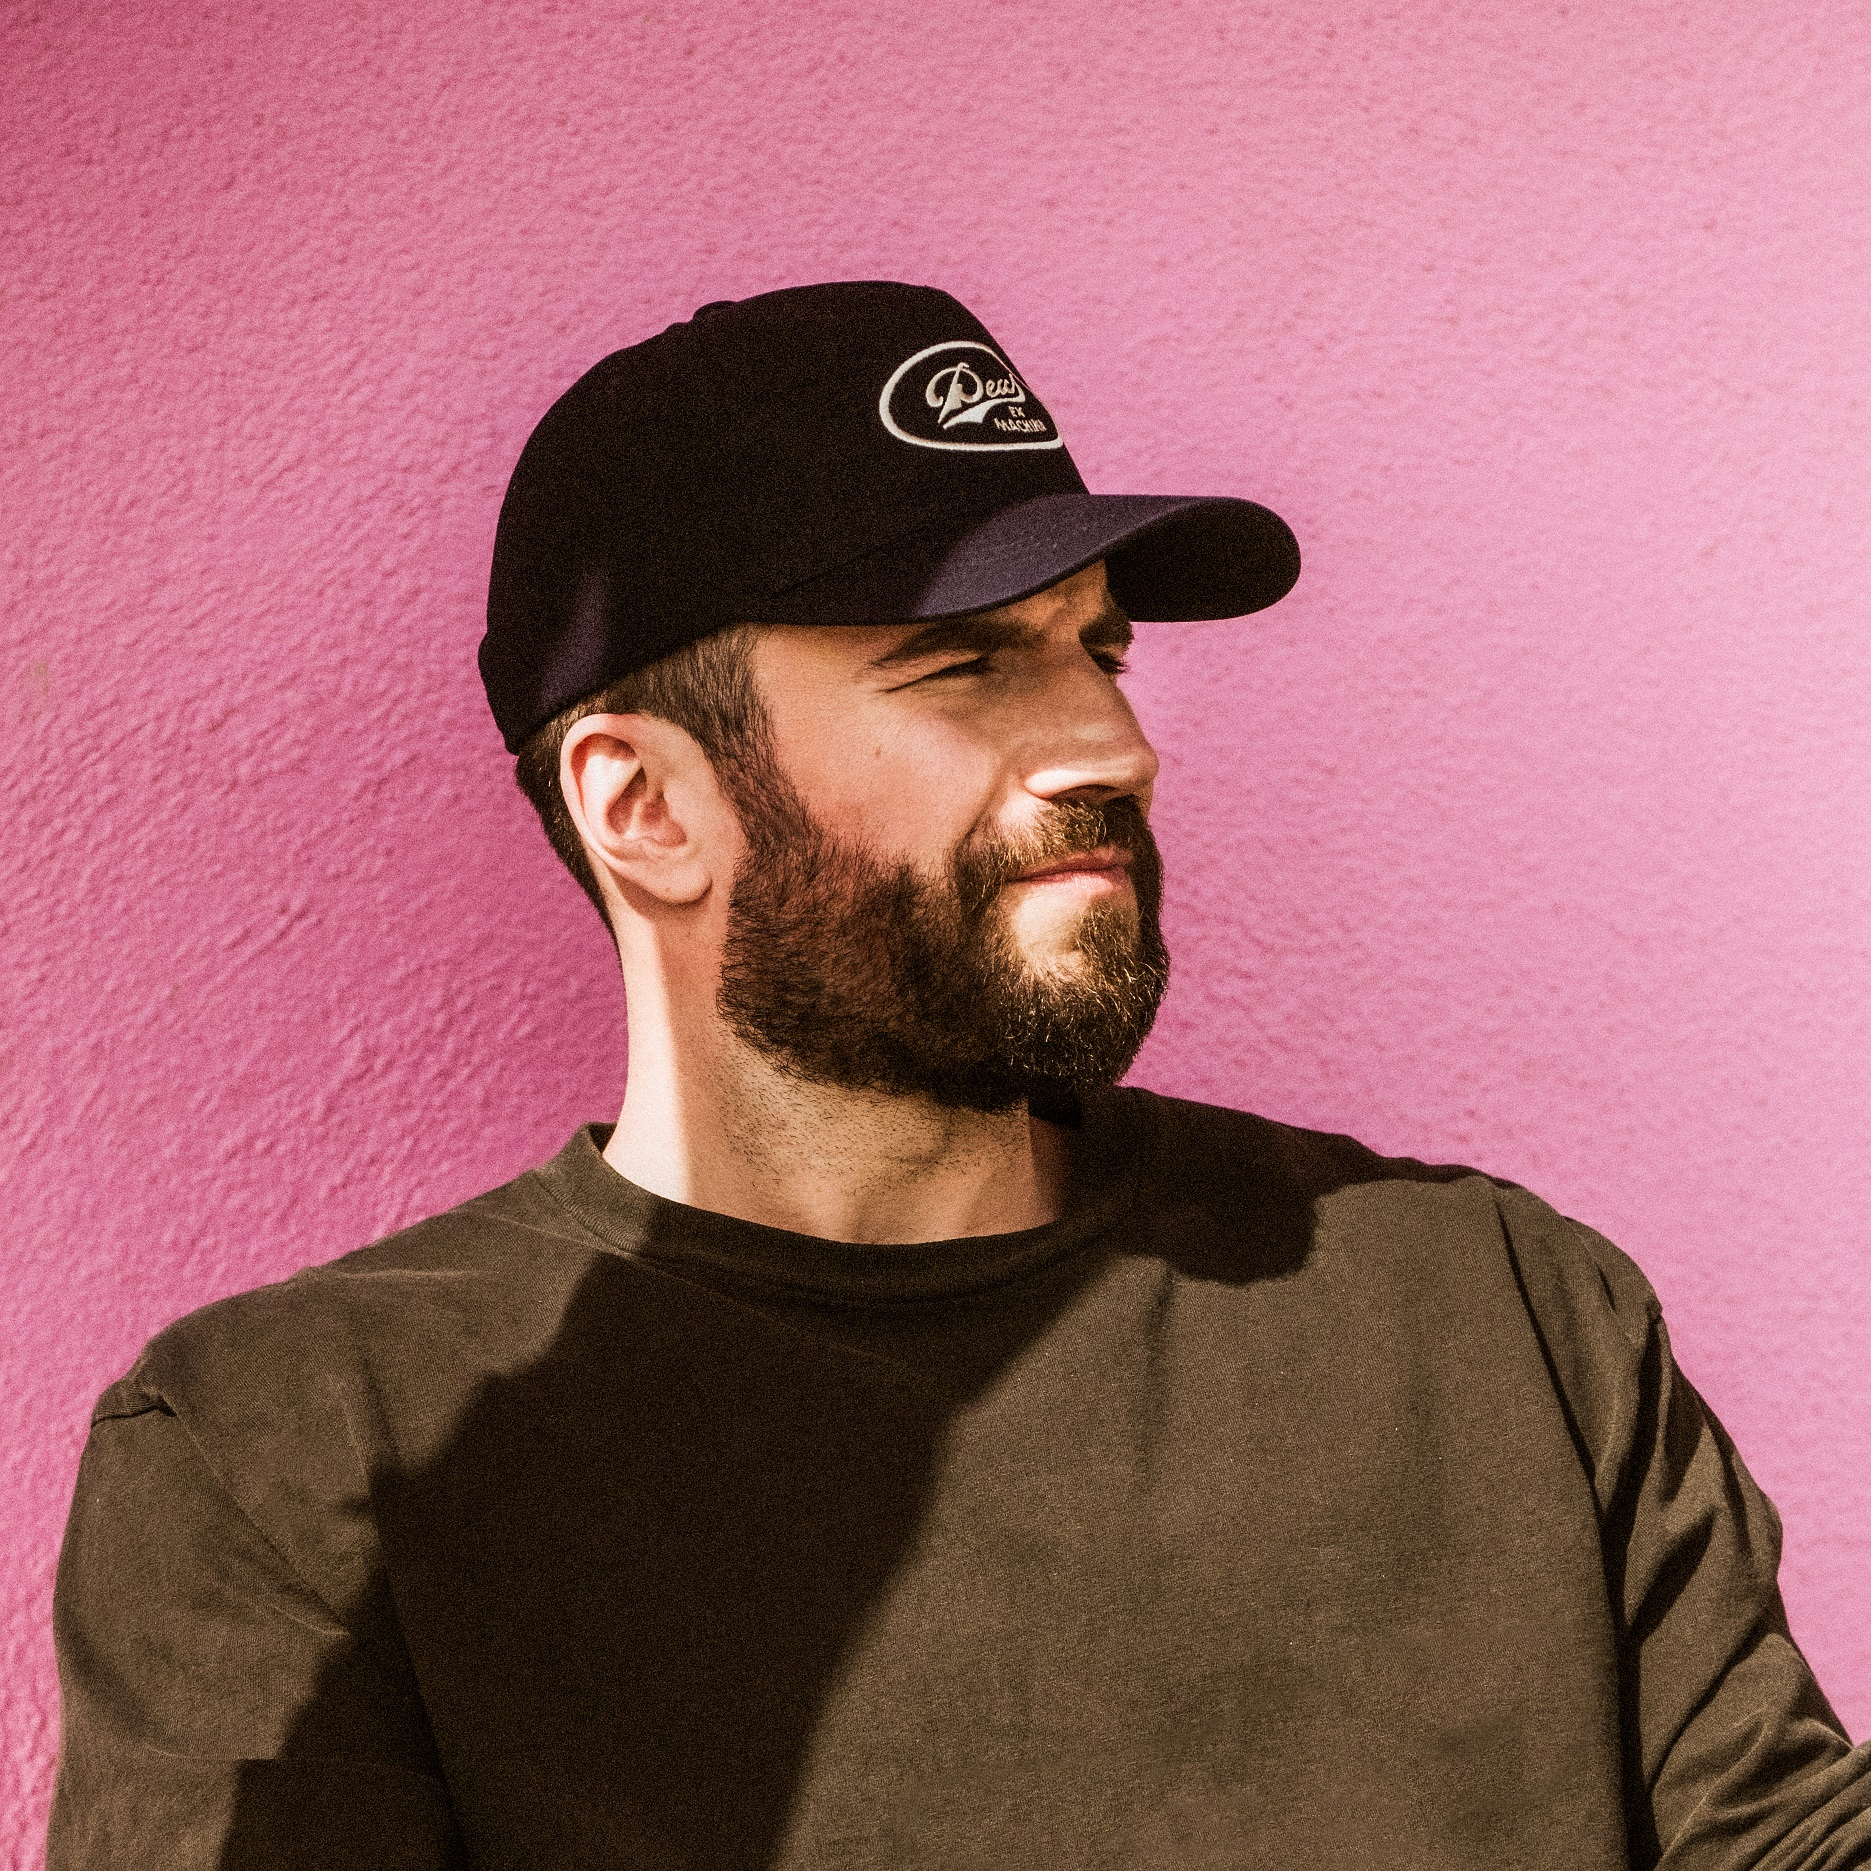 SAM HUNT RELEASES THE VINYL VERSION OF HIS LATEST ALBUM, SOUTHSIDE, ON FRIDAY.